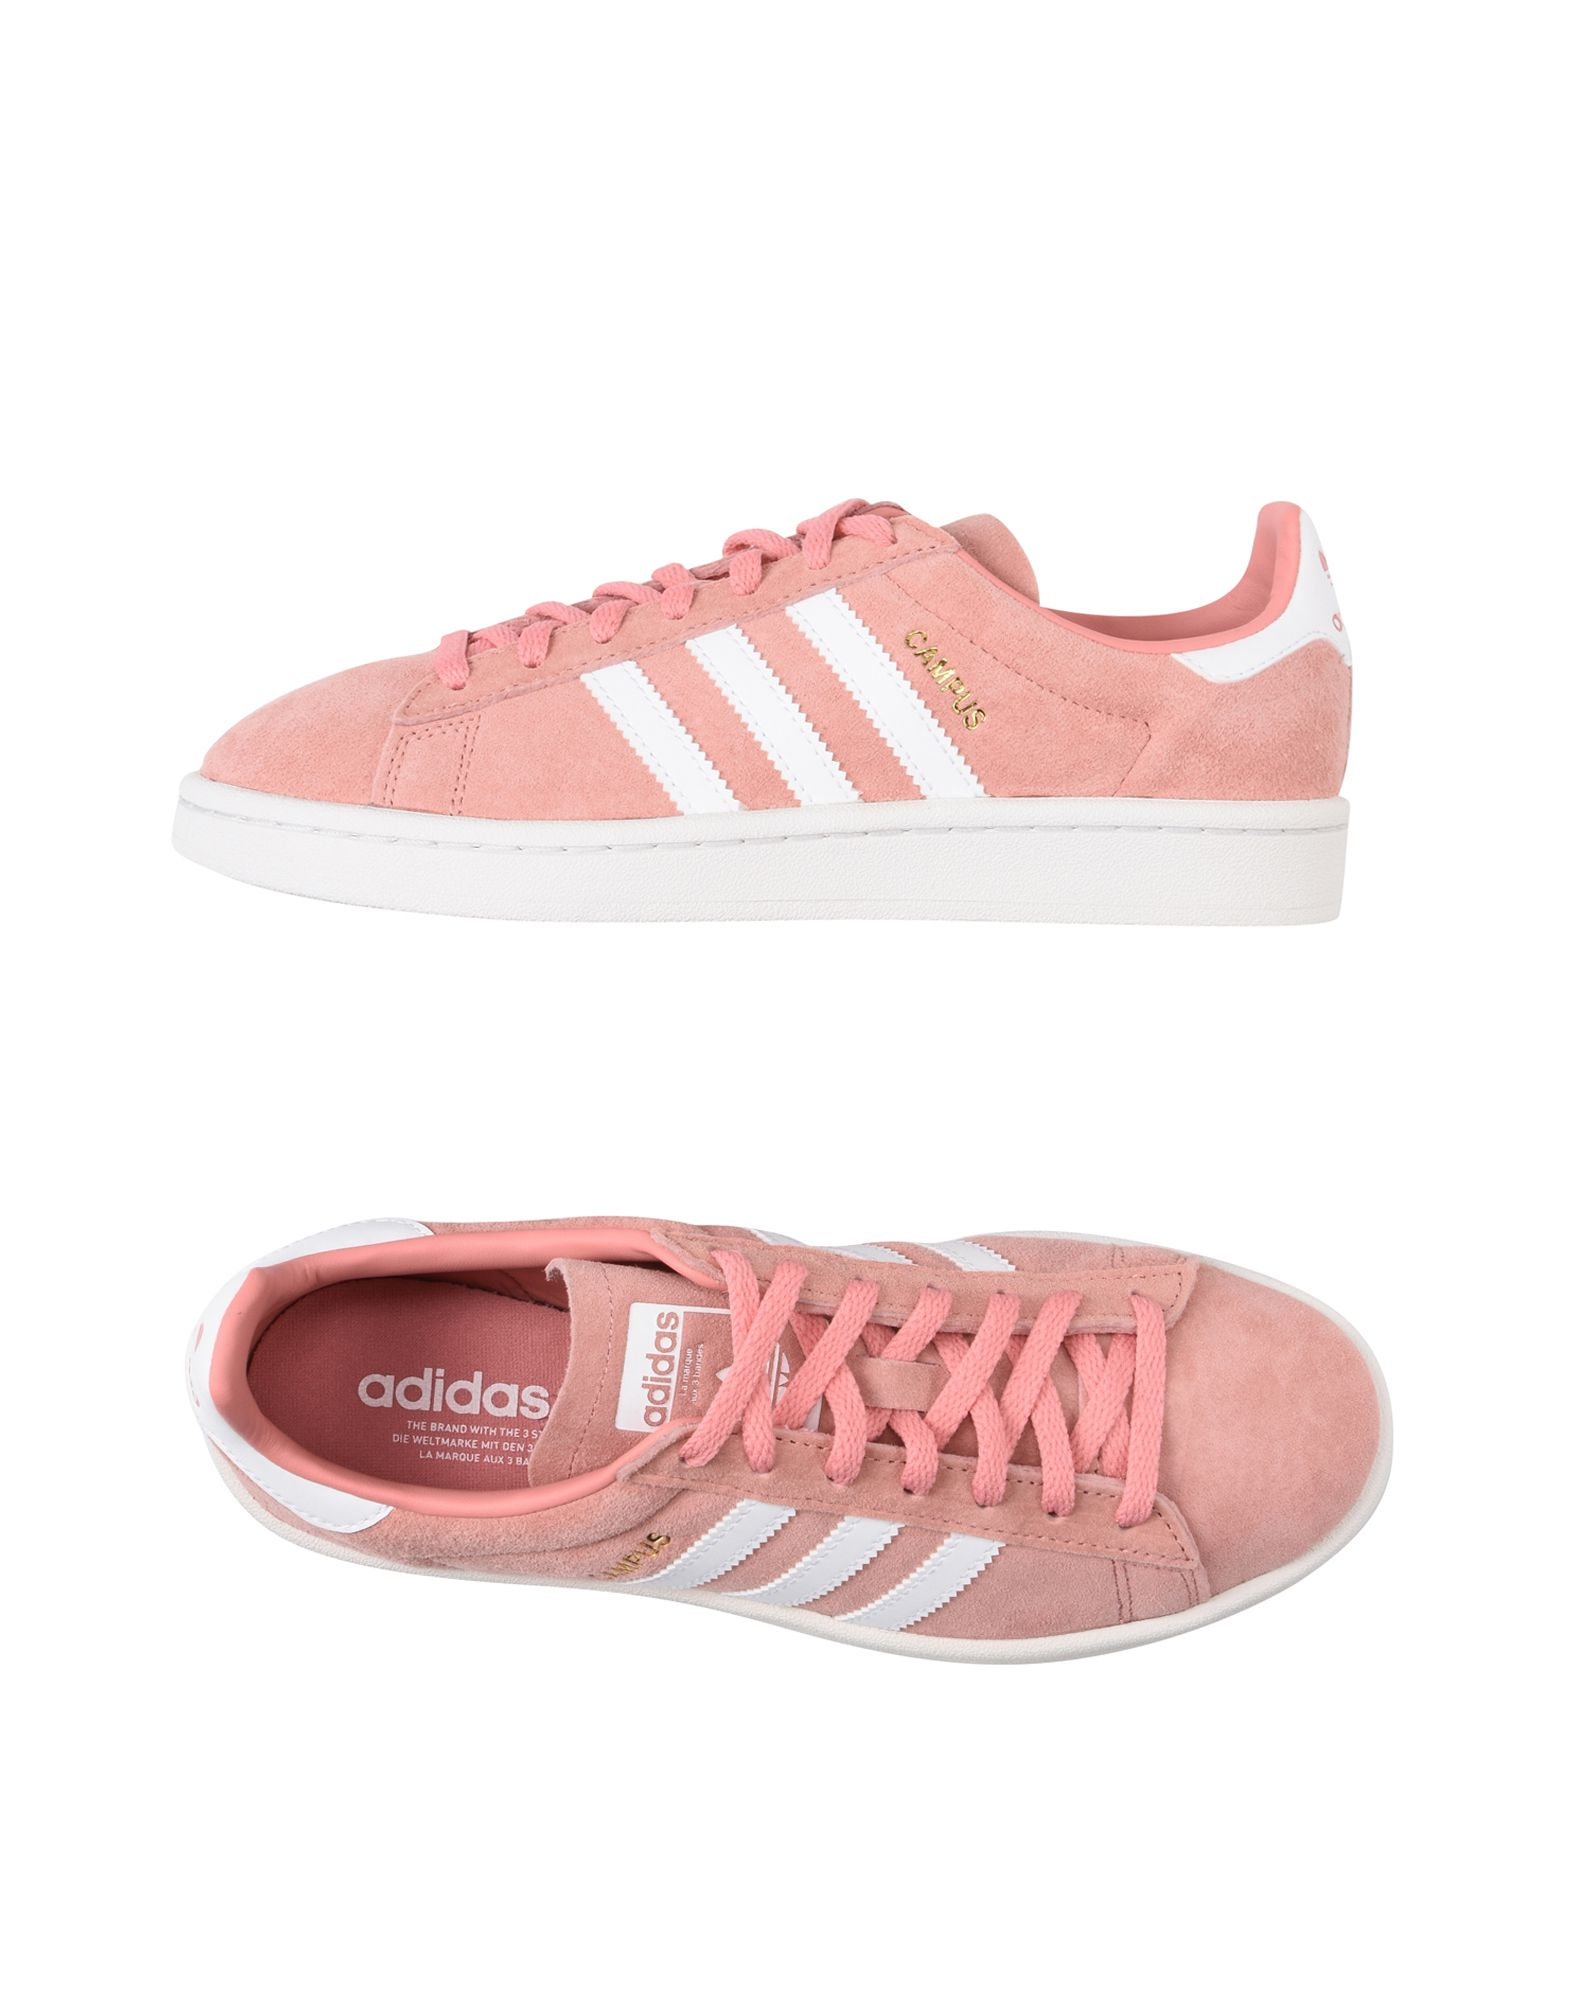 Sneakers - Adidas Originals Adidas Campus - Sneakers Donna - 11533851WU 76e23a